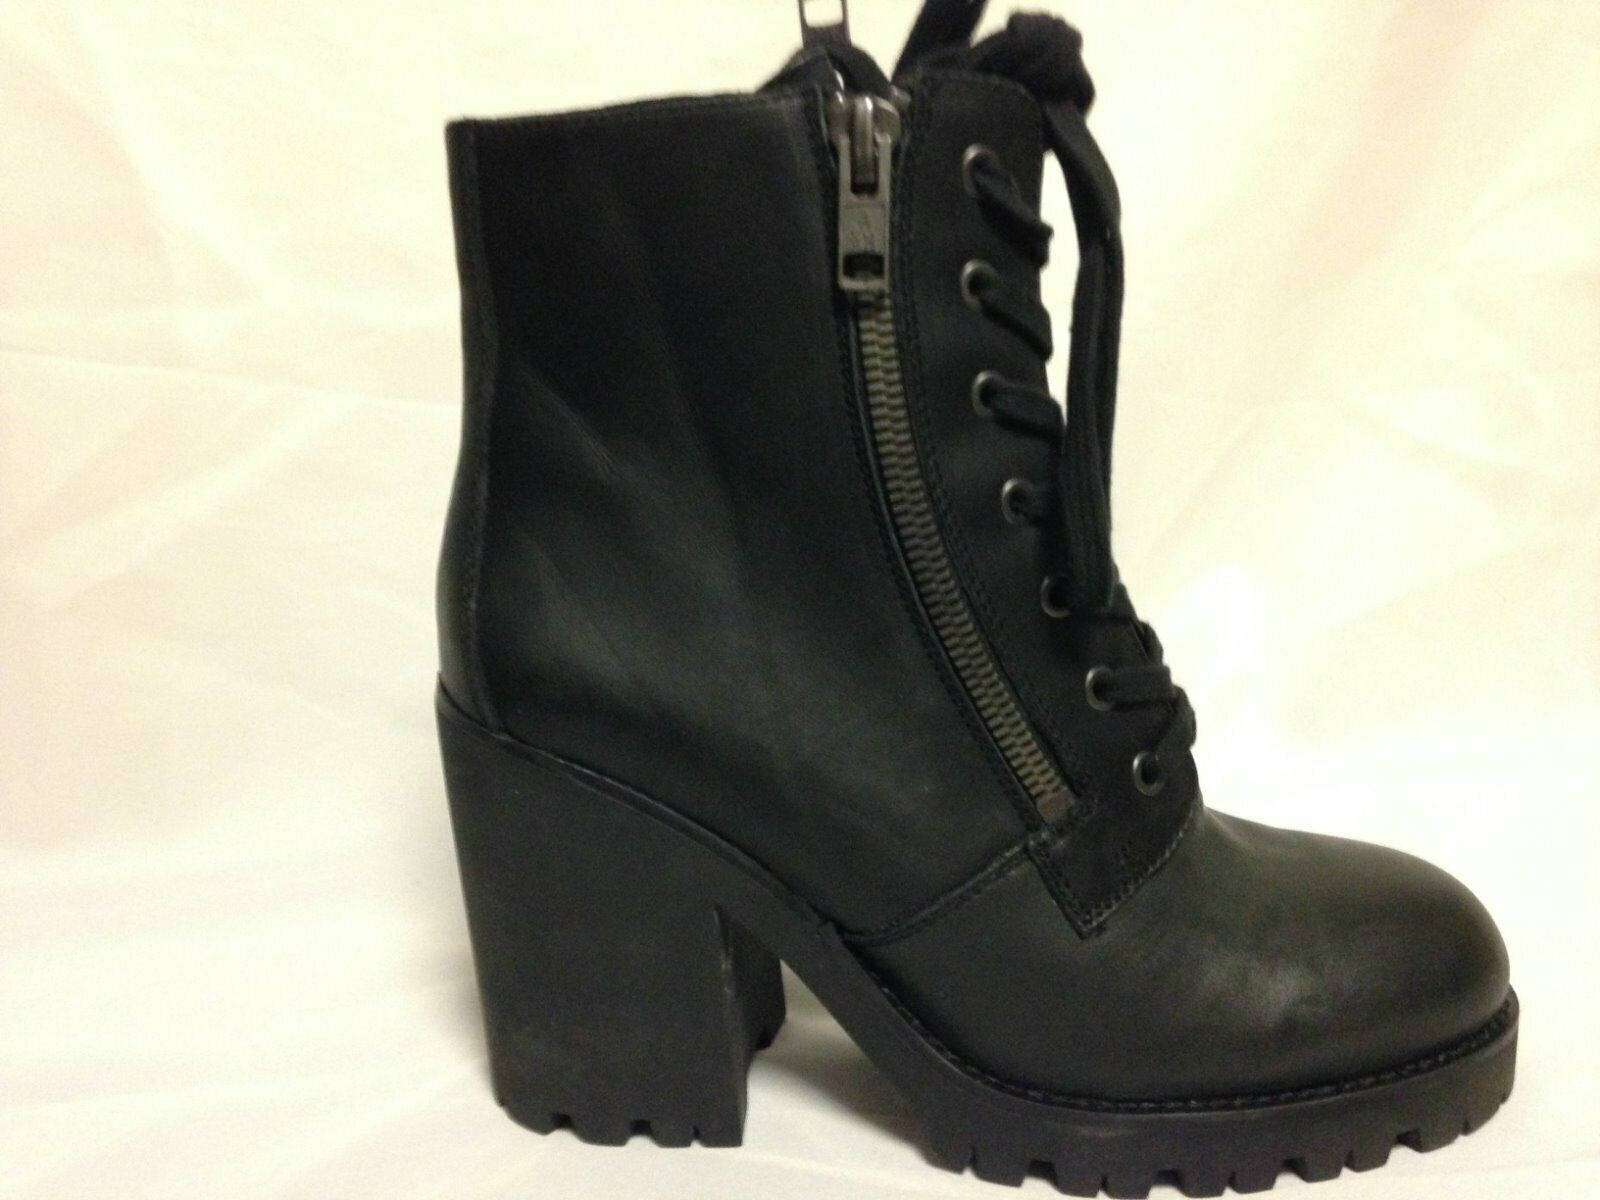 ASH Poker Lace Up Up Up Motorcycle Ankle Boot 41 M Black Leather  New w Box 7d3d38